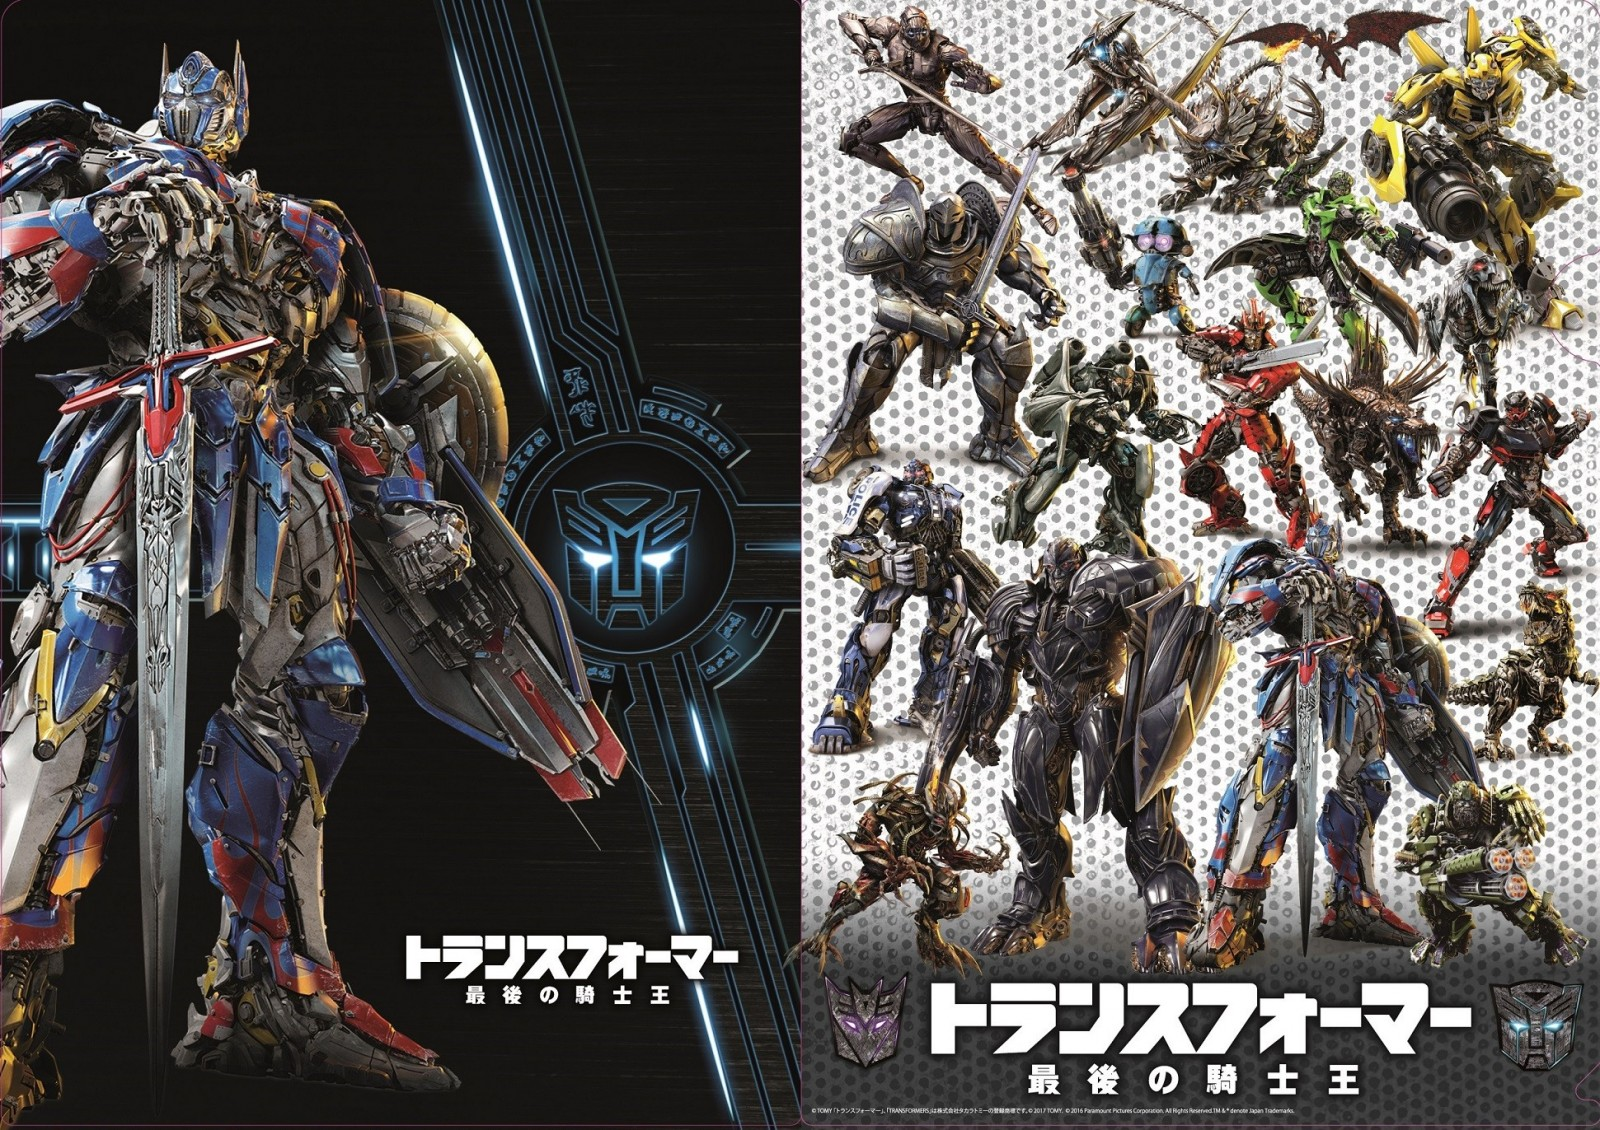 Transformers News: Takara Tomy Transformers The Last Knight TLK Cybertron Satellite Promotion